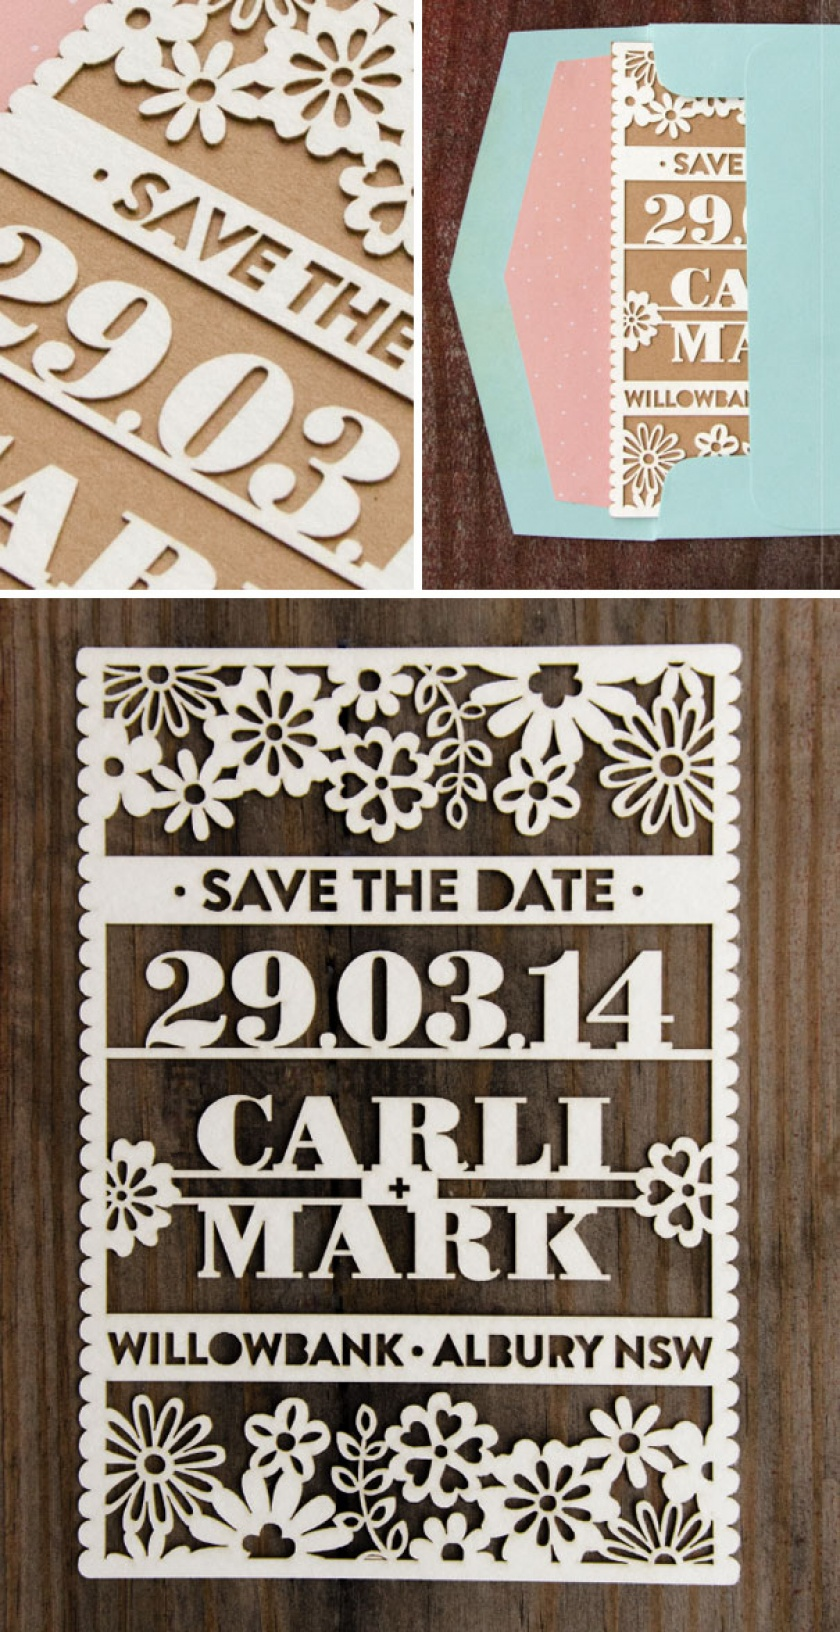 1469778608creative-wedding-invitations-51-5790d4f33b0c9__605.jpg